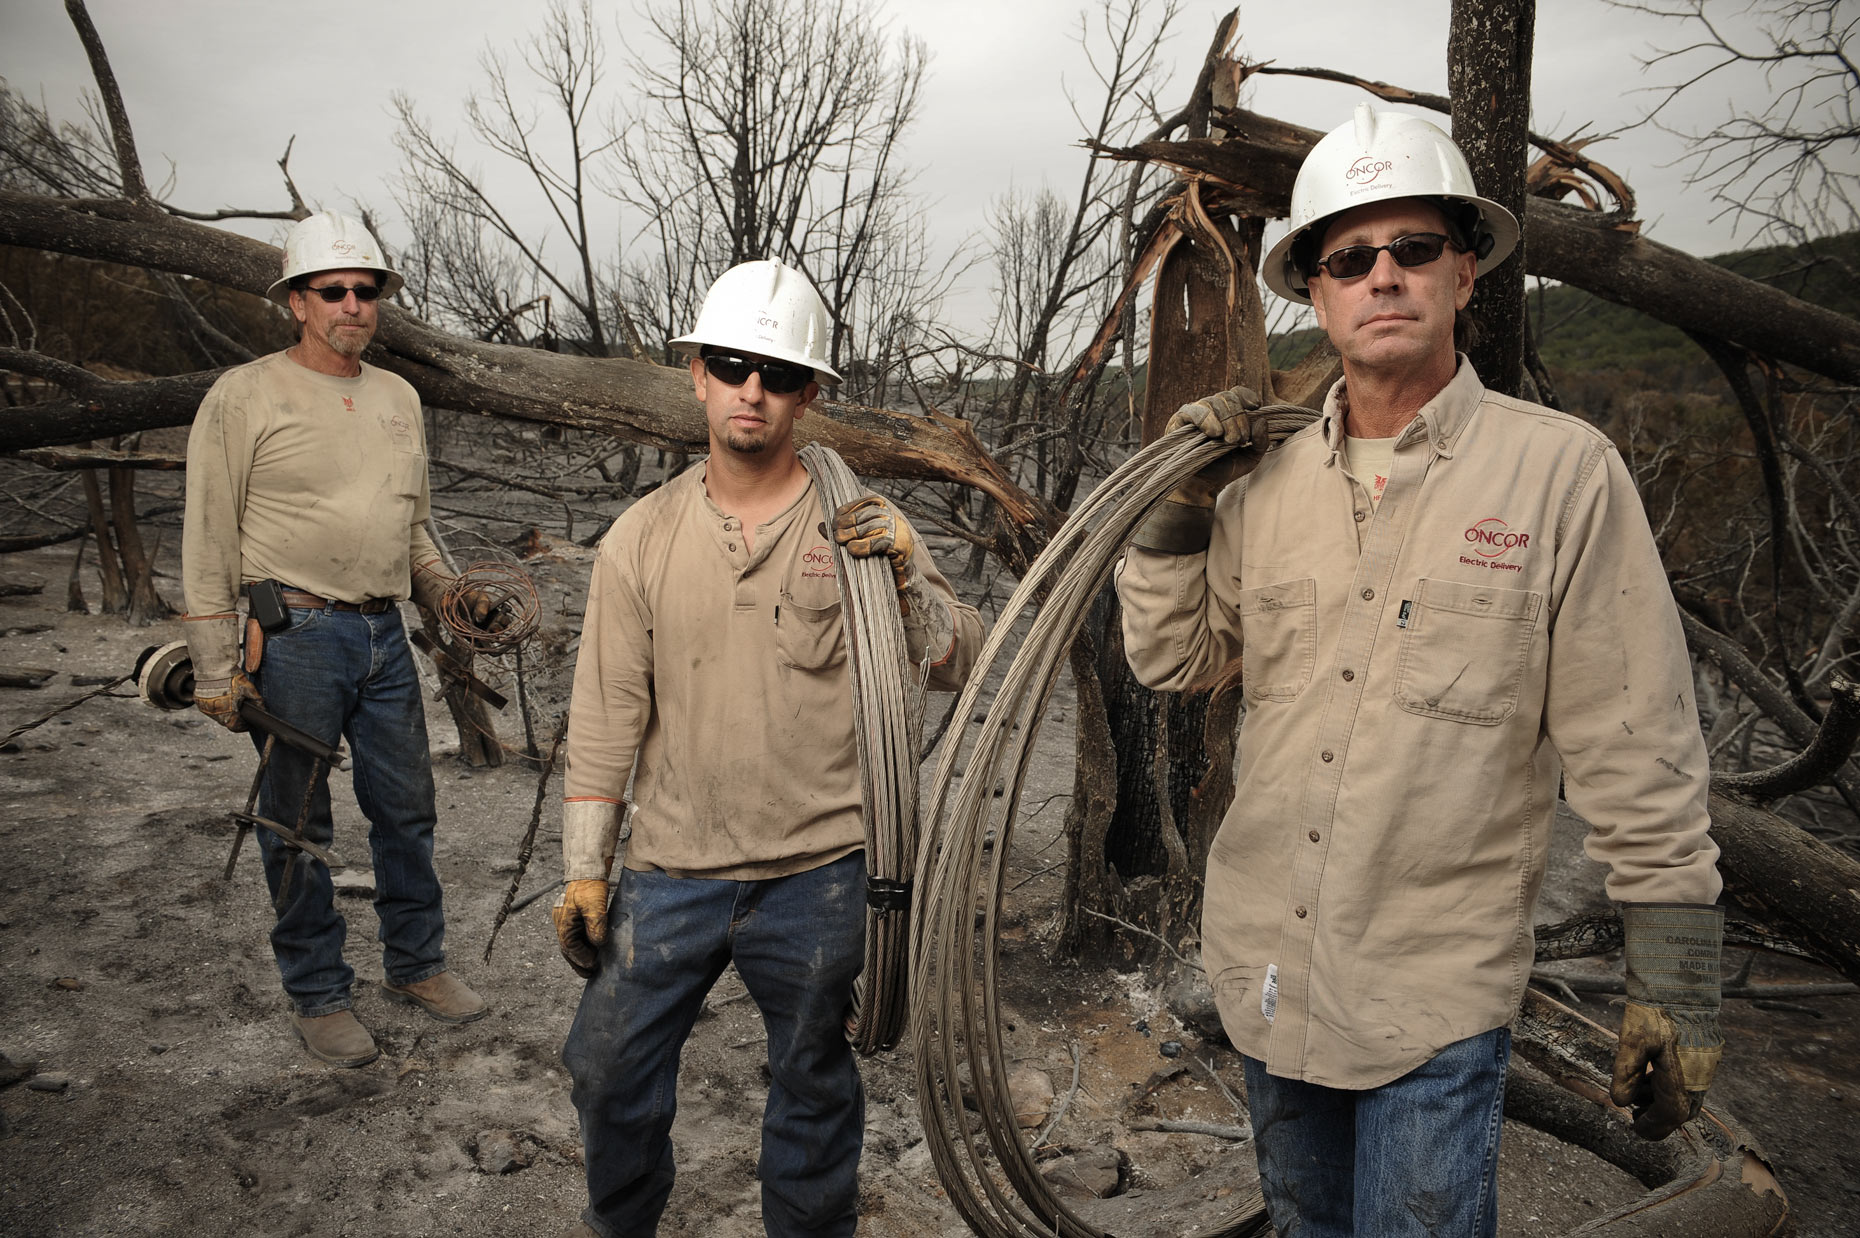 Electric workers after fires working to restore power west of Fort Worth by Kevin Brown.